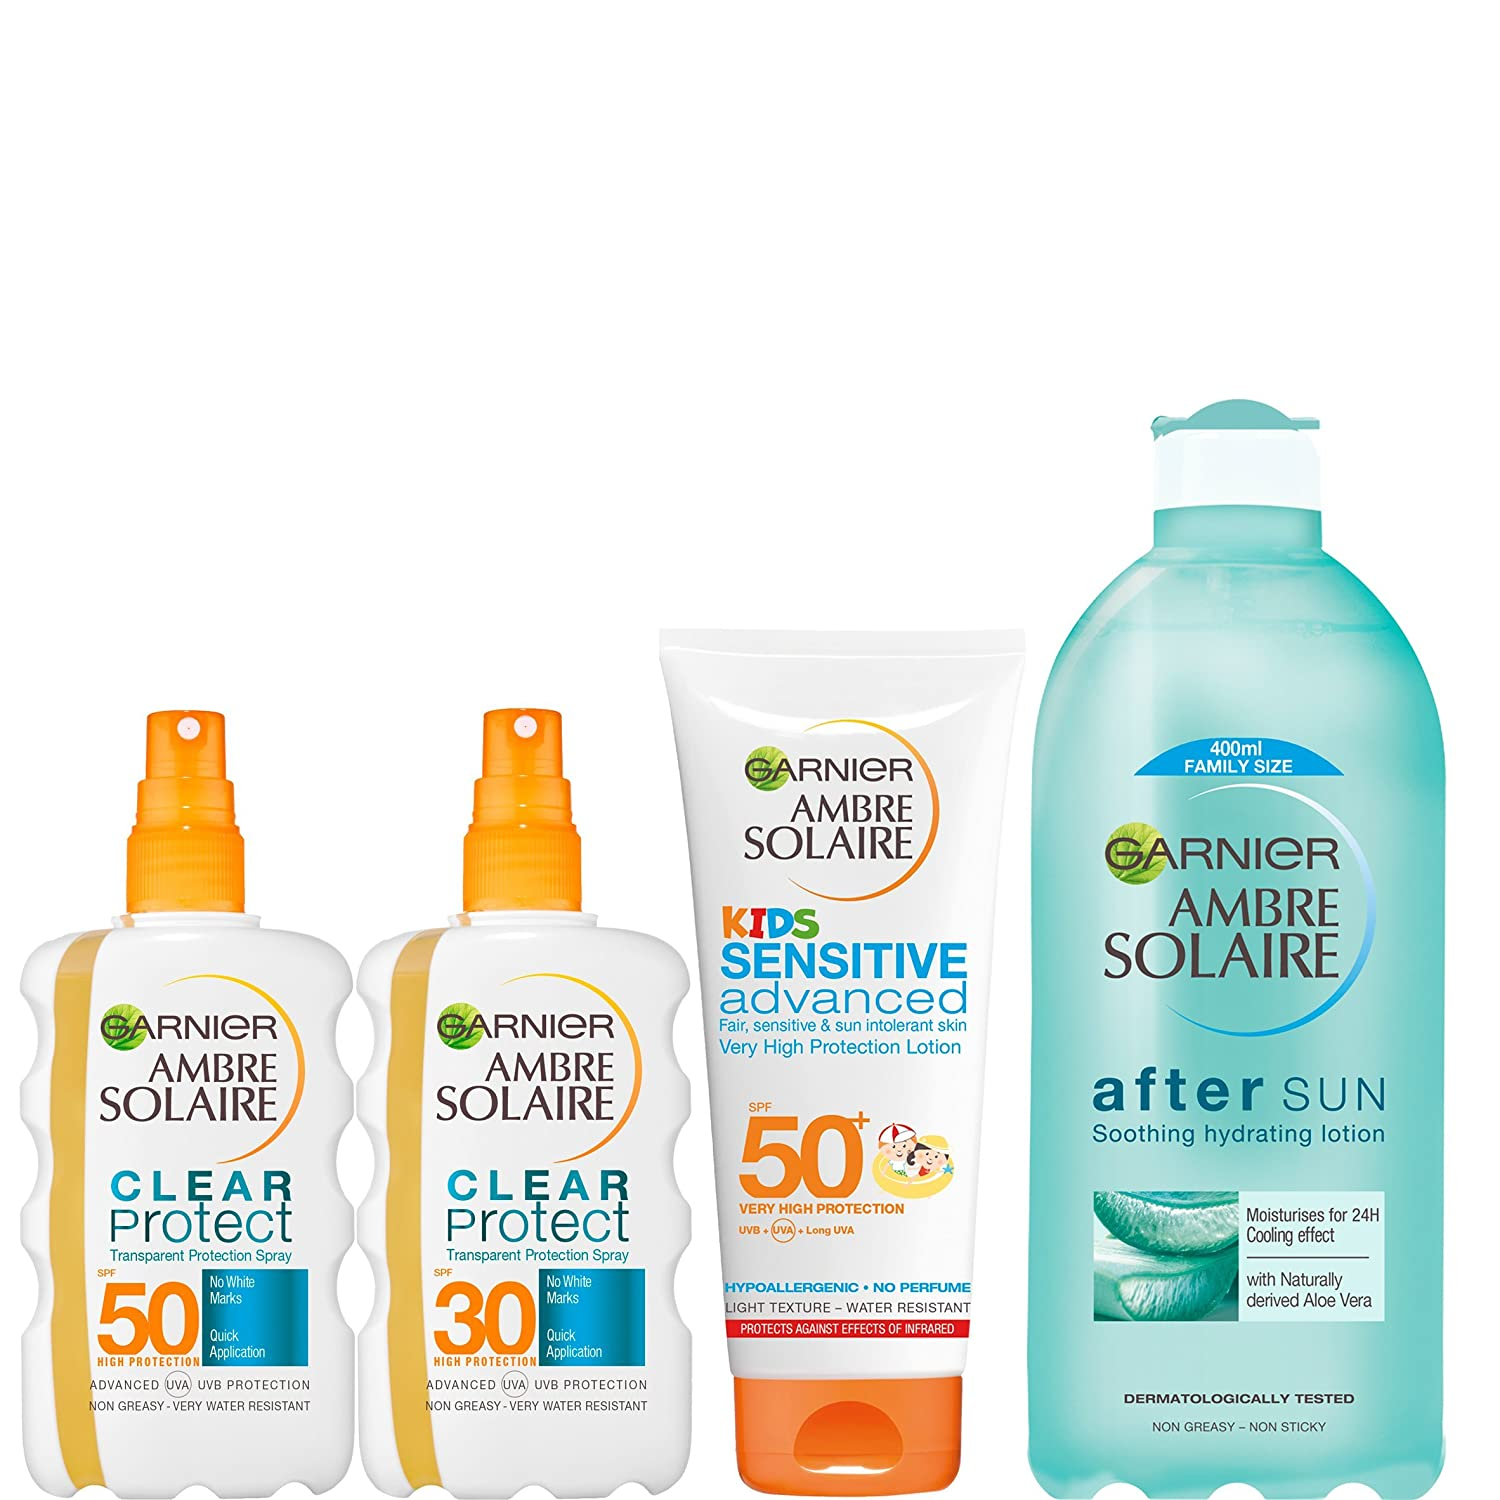 Ambre Solaire Clear Protect Sun Cream Spray SPF 20 200ml Garnier 3600540282828